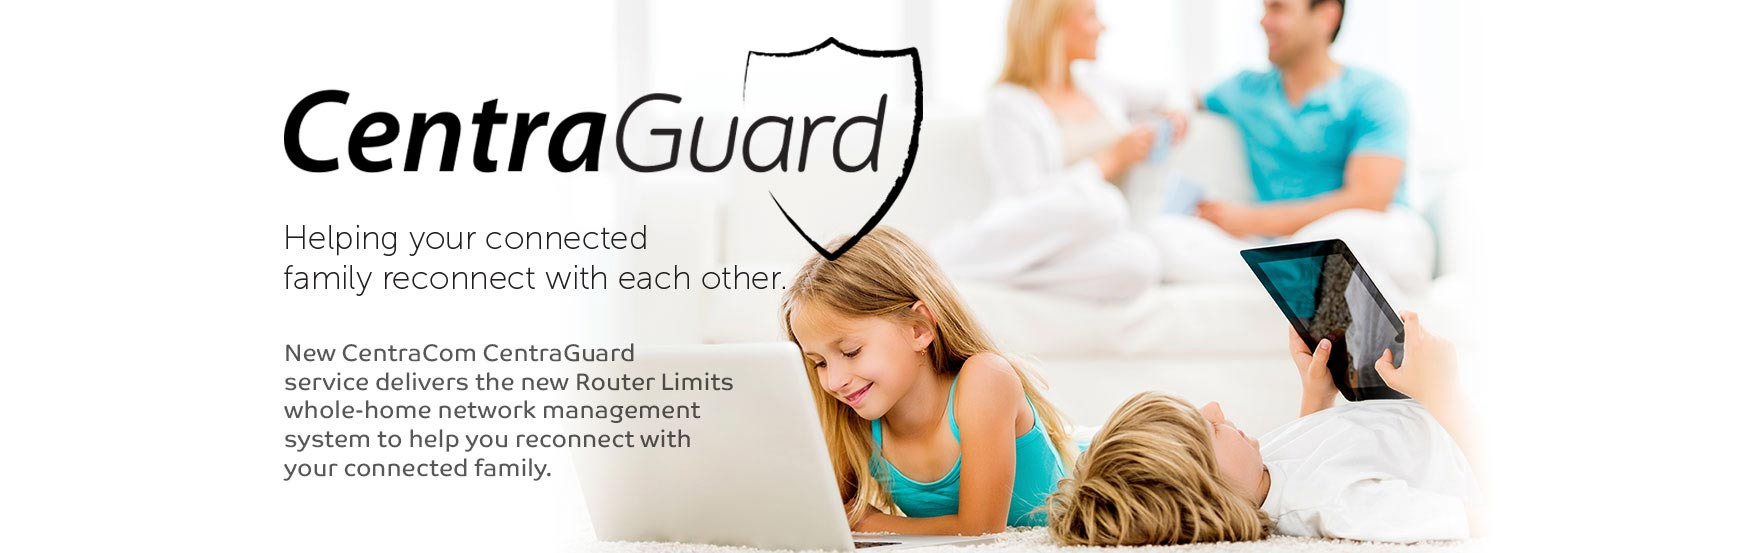 CentraGuard: Helping your connected family reconnect with each other